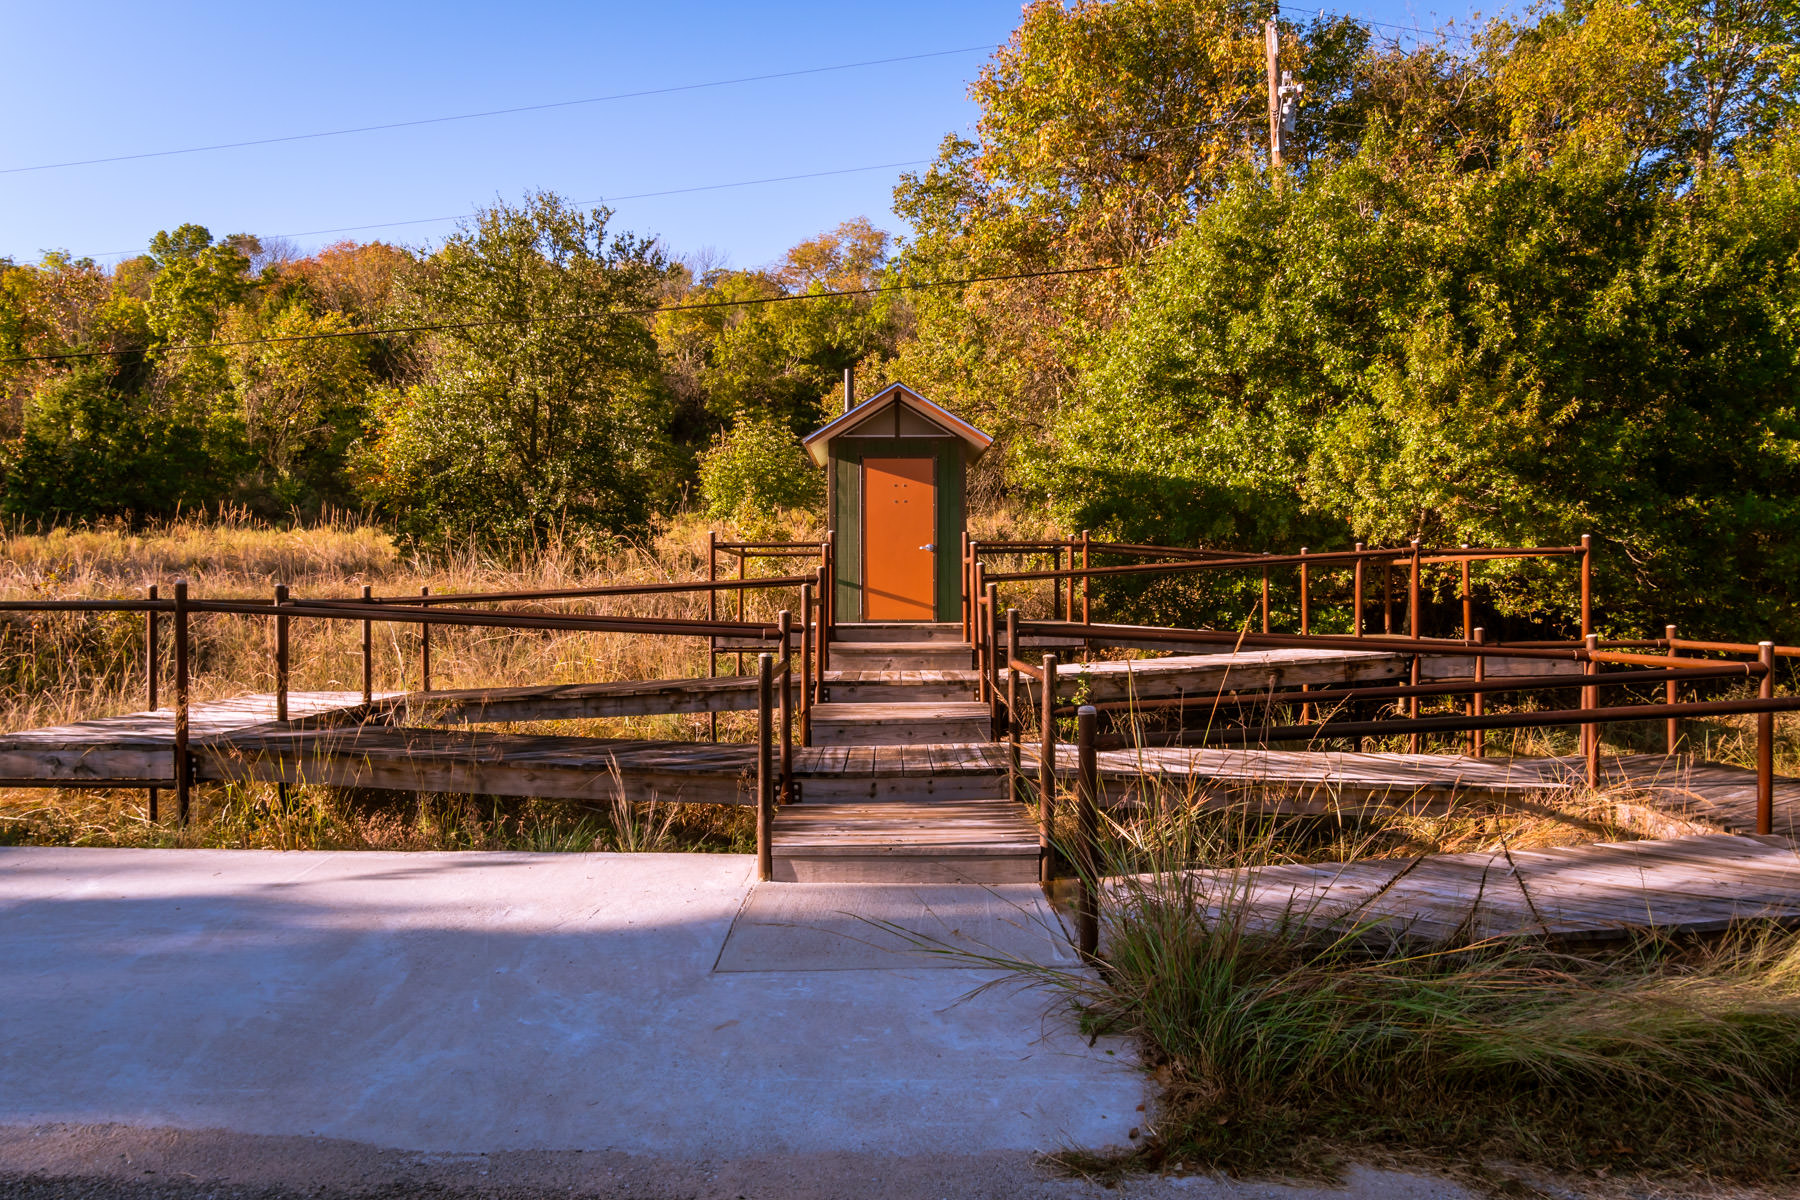 An elaborate ramp weaves it way to a small utility building at the Fort Worth Nature Preserve, Texas.